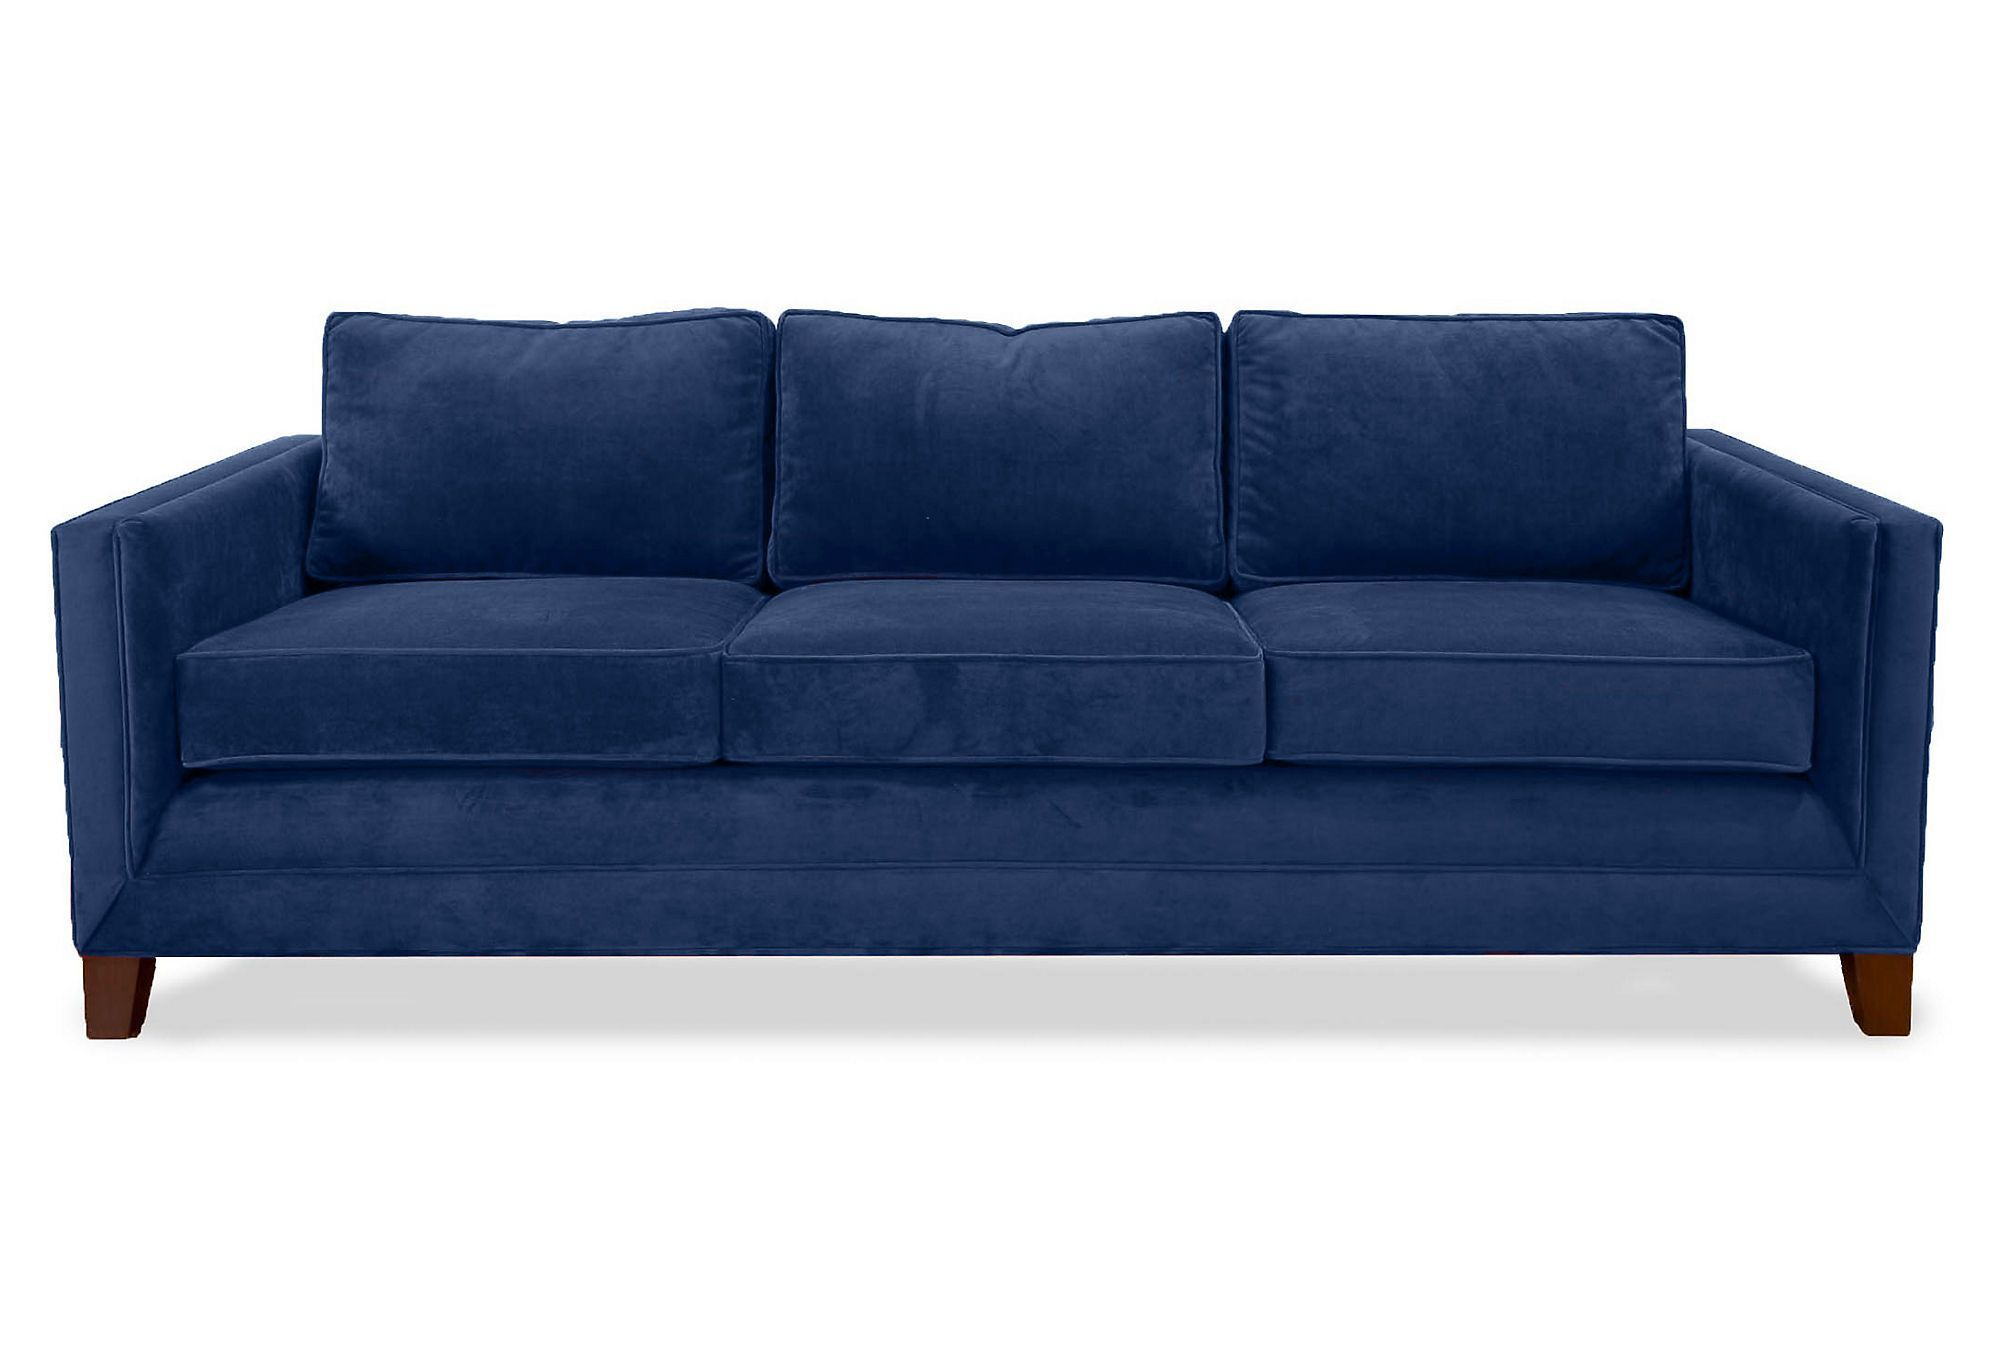 Sofa Sale The loose seat and back cushions are made with durable polyfoam wrapped in a goose down blend